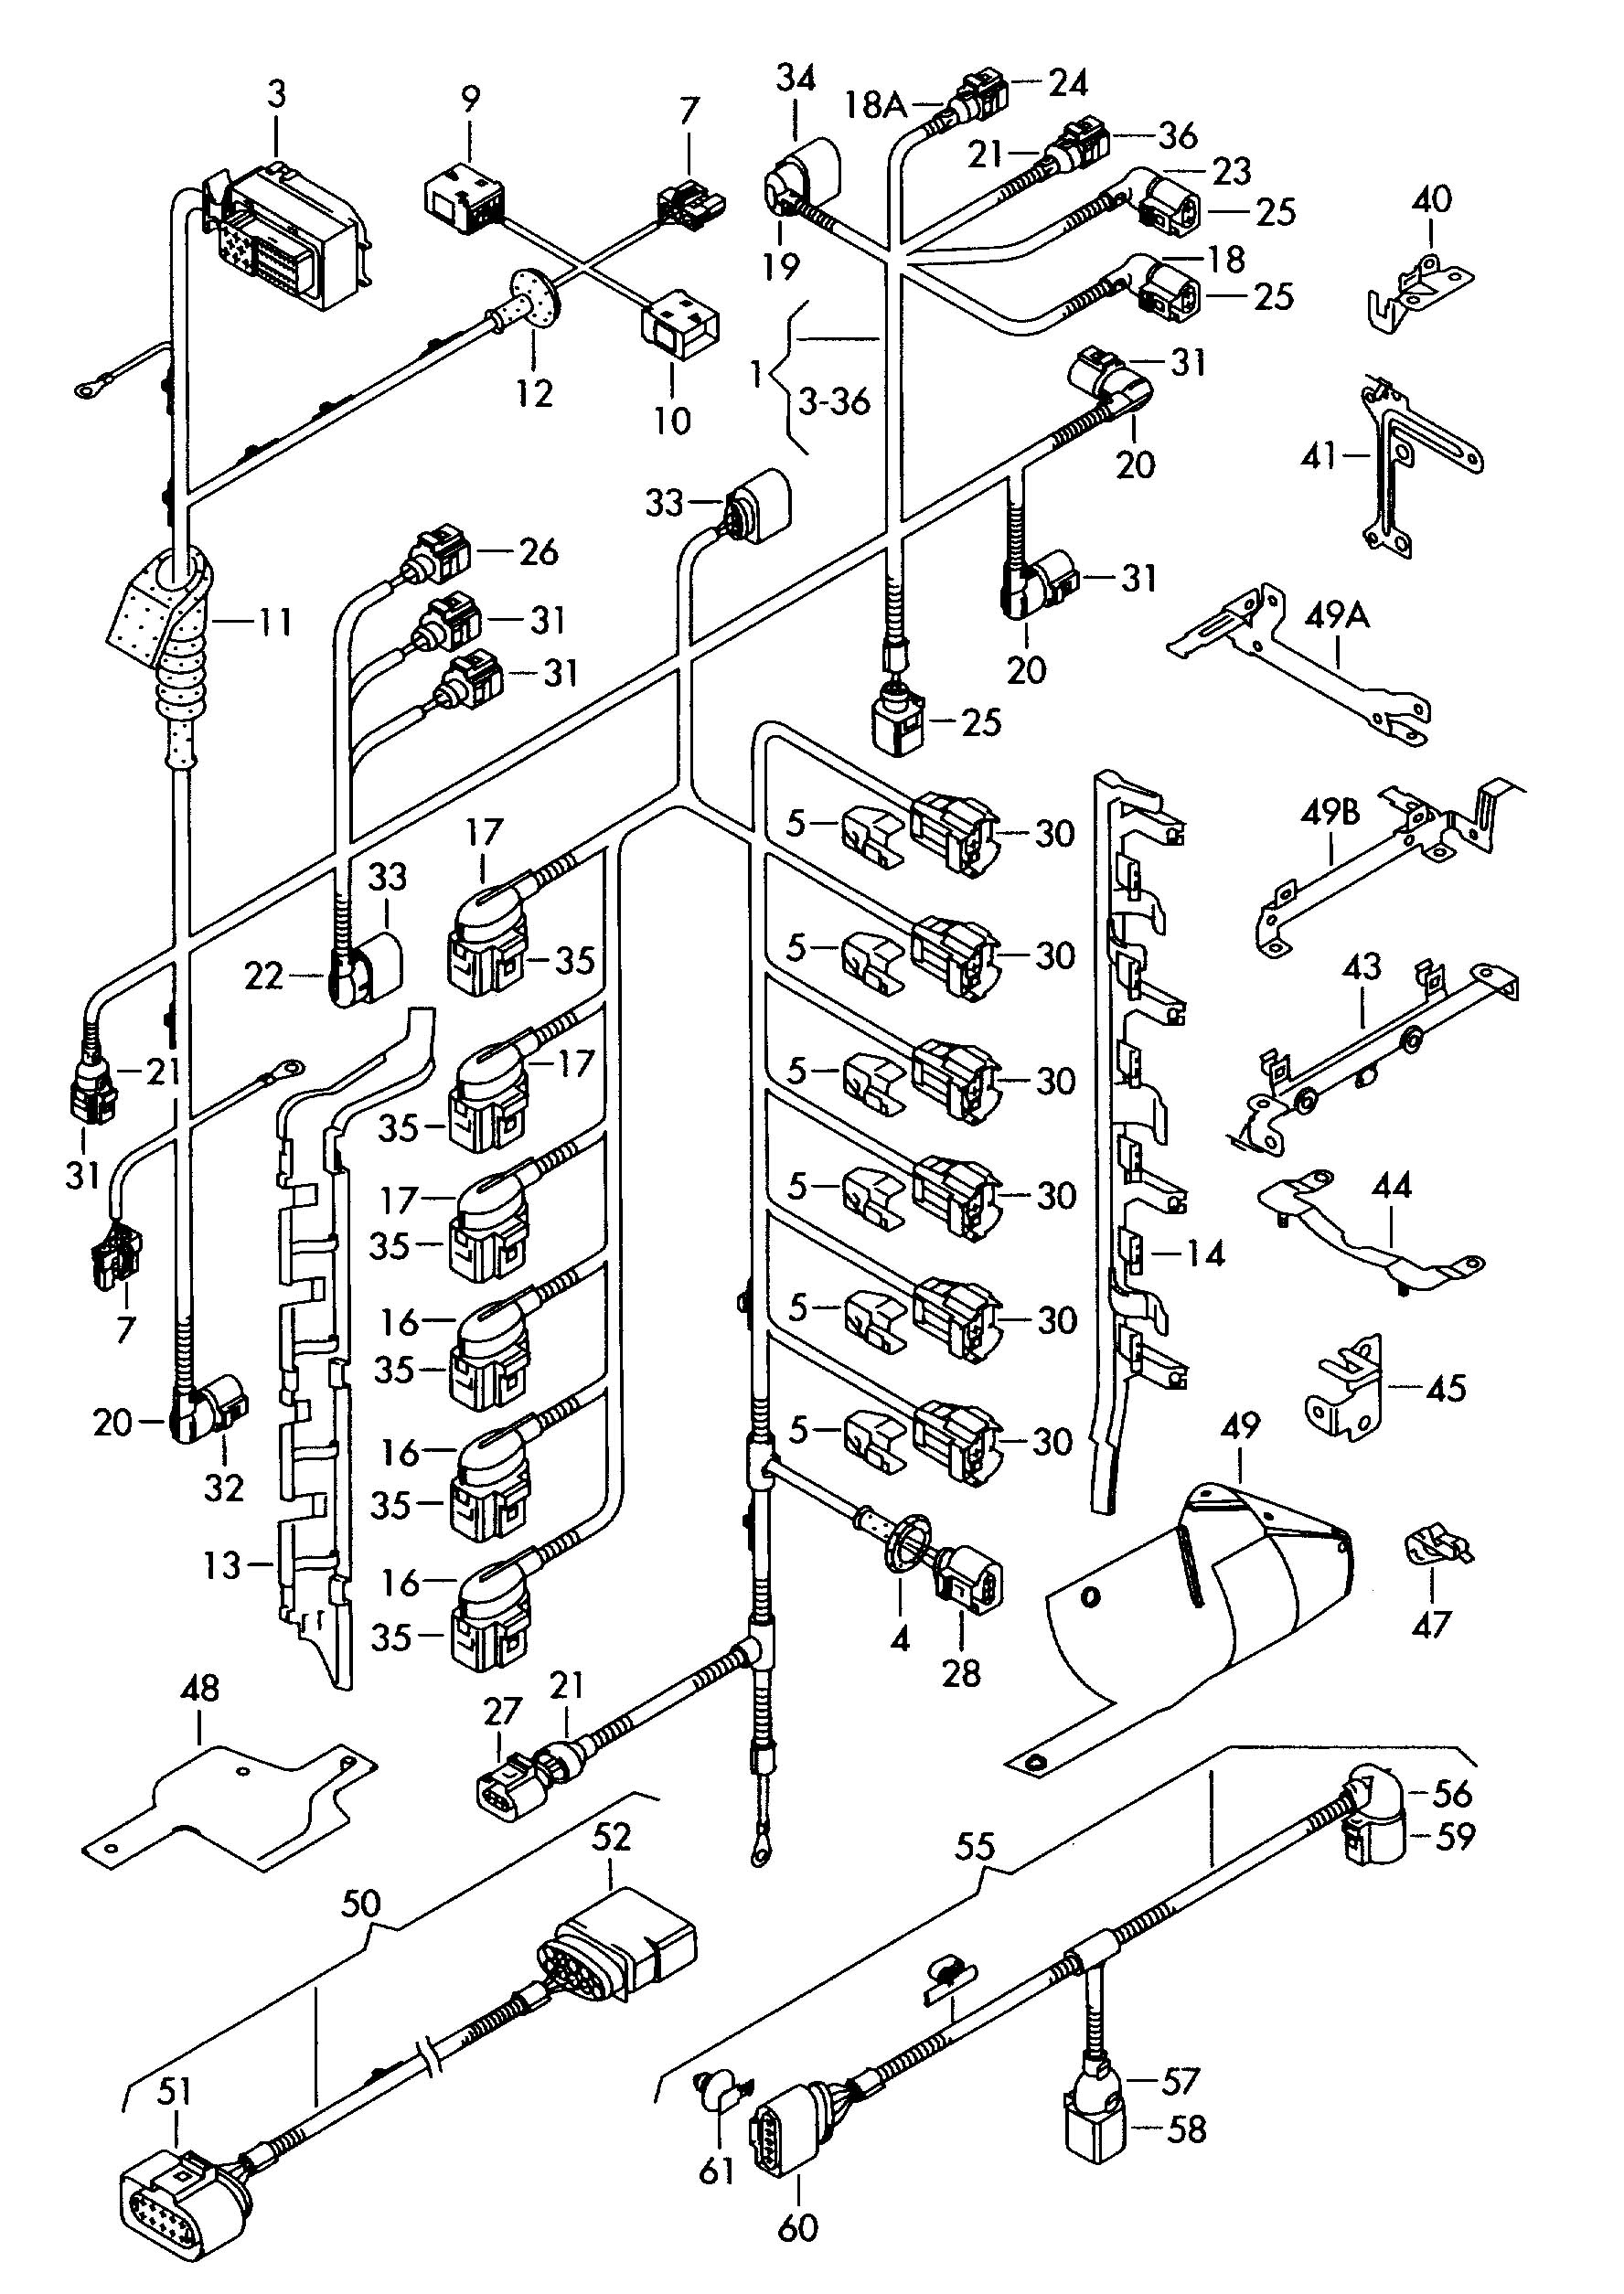 vw routan fuse box diagram  vw  free engine image for user